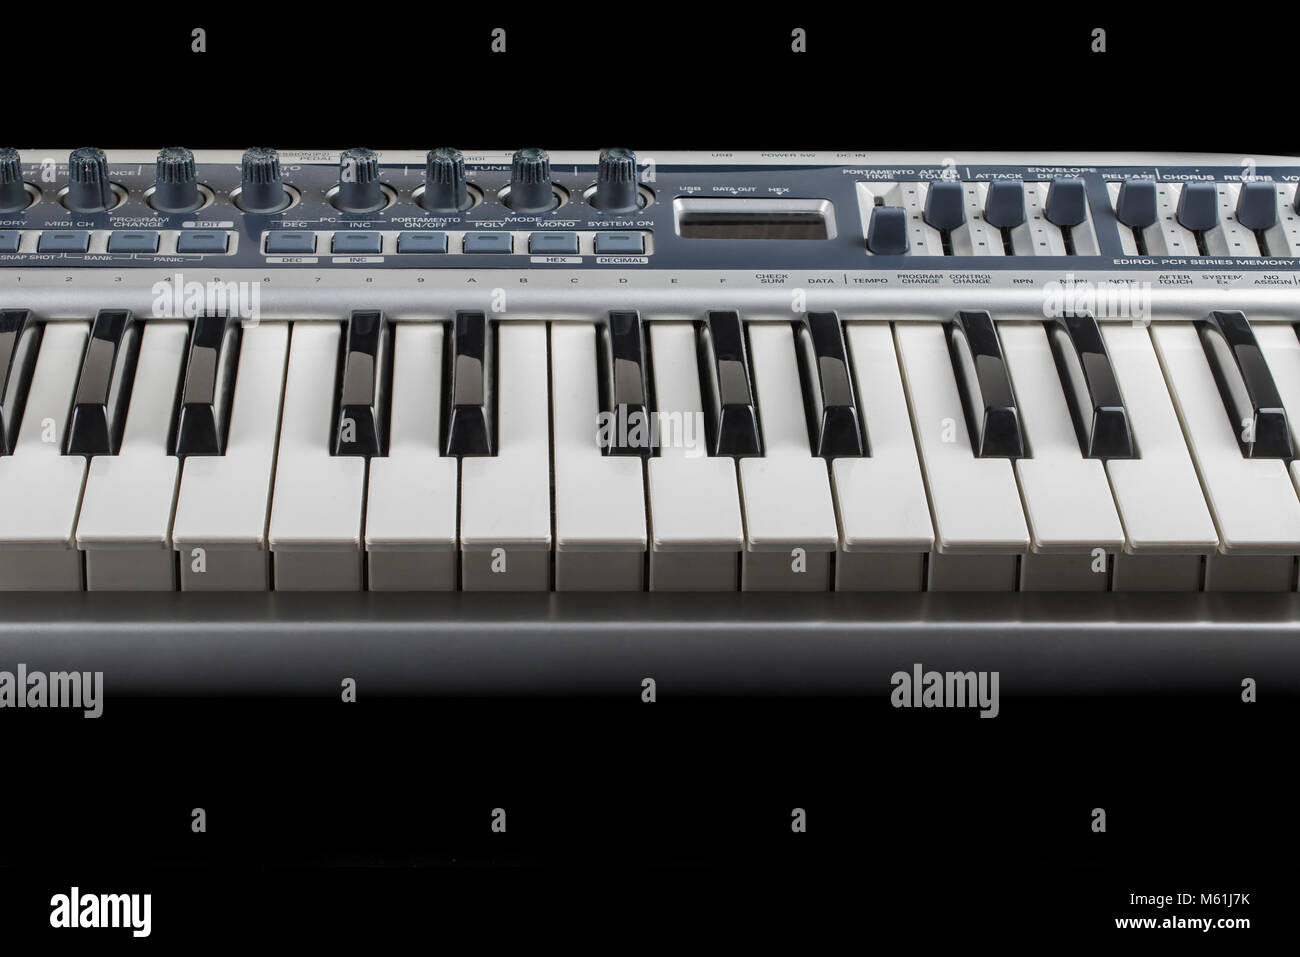 MIDI Keyboard in music studio - Stock Image